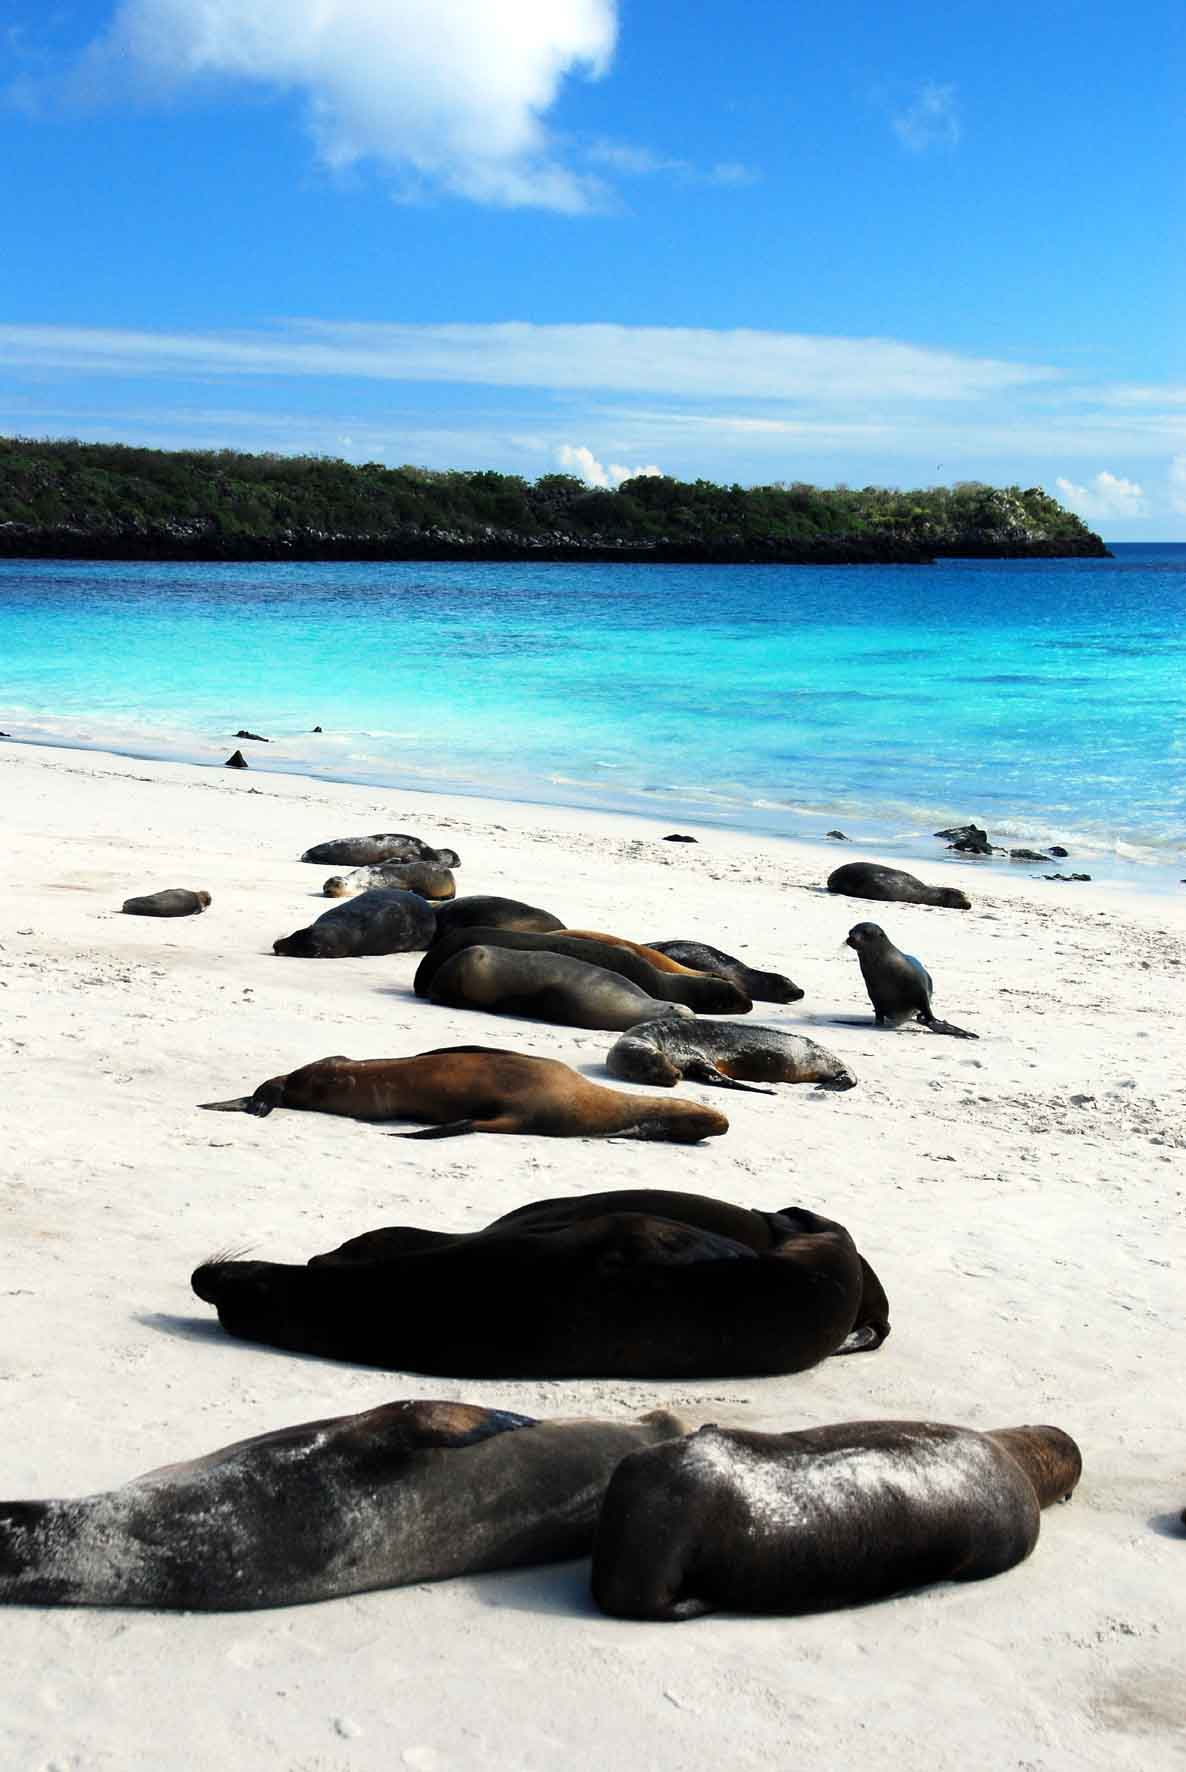 Isla Espanol - Sea Lions Hanging Out on the Beach